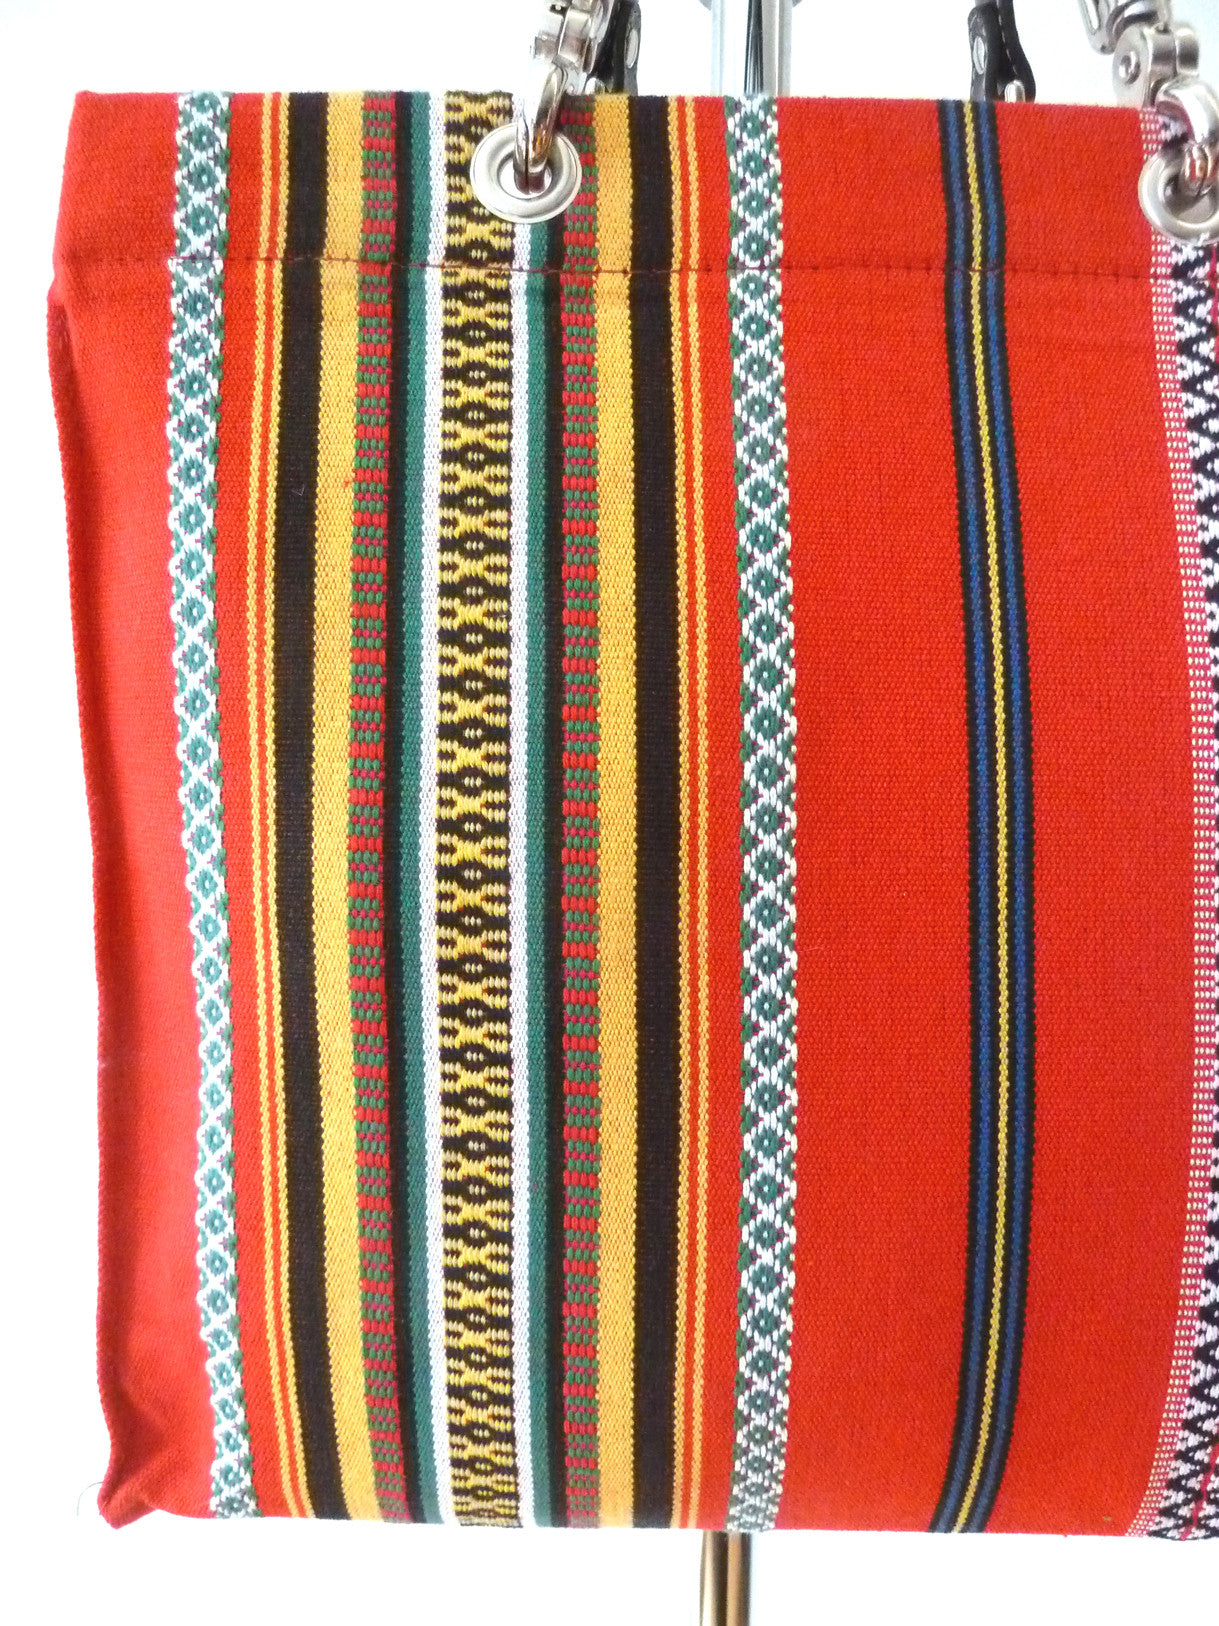 French Cotton Stripe Bags Red Black